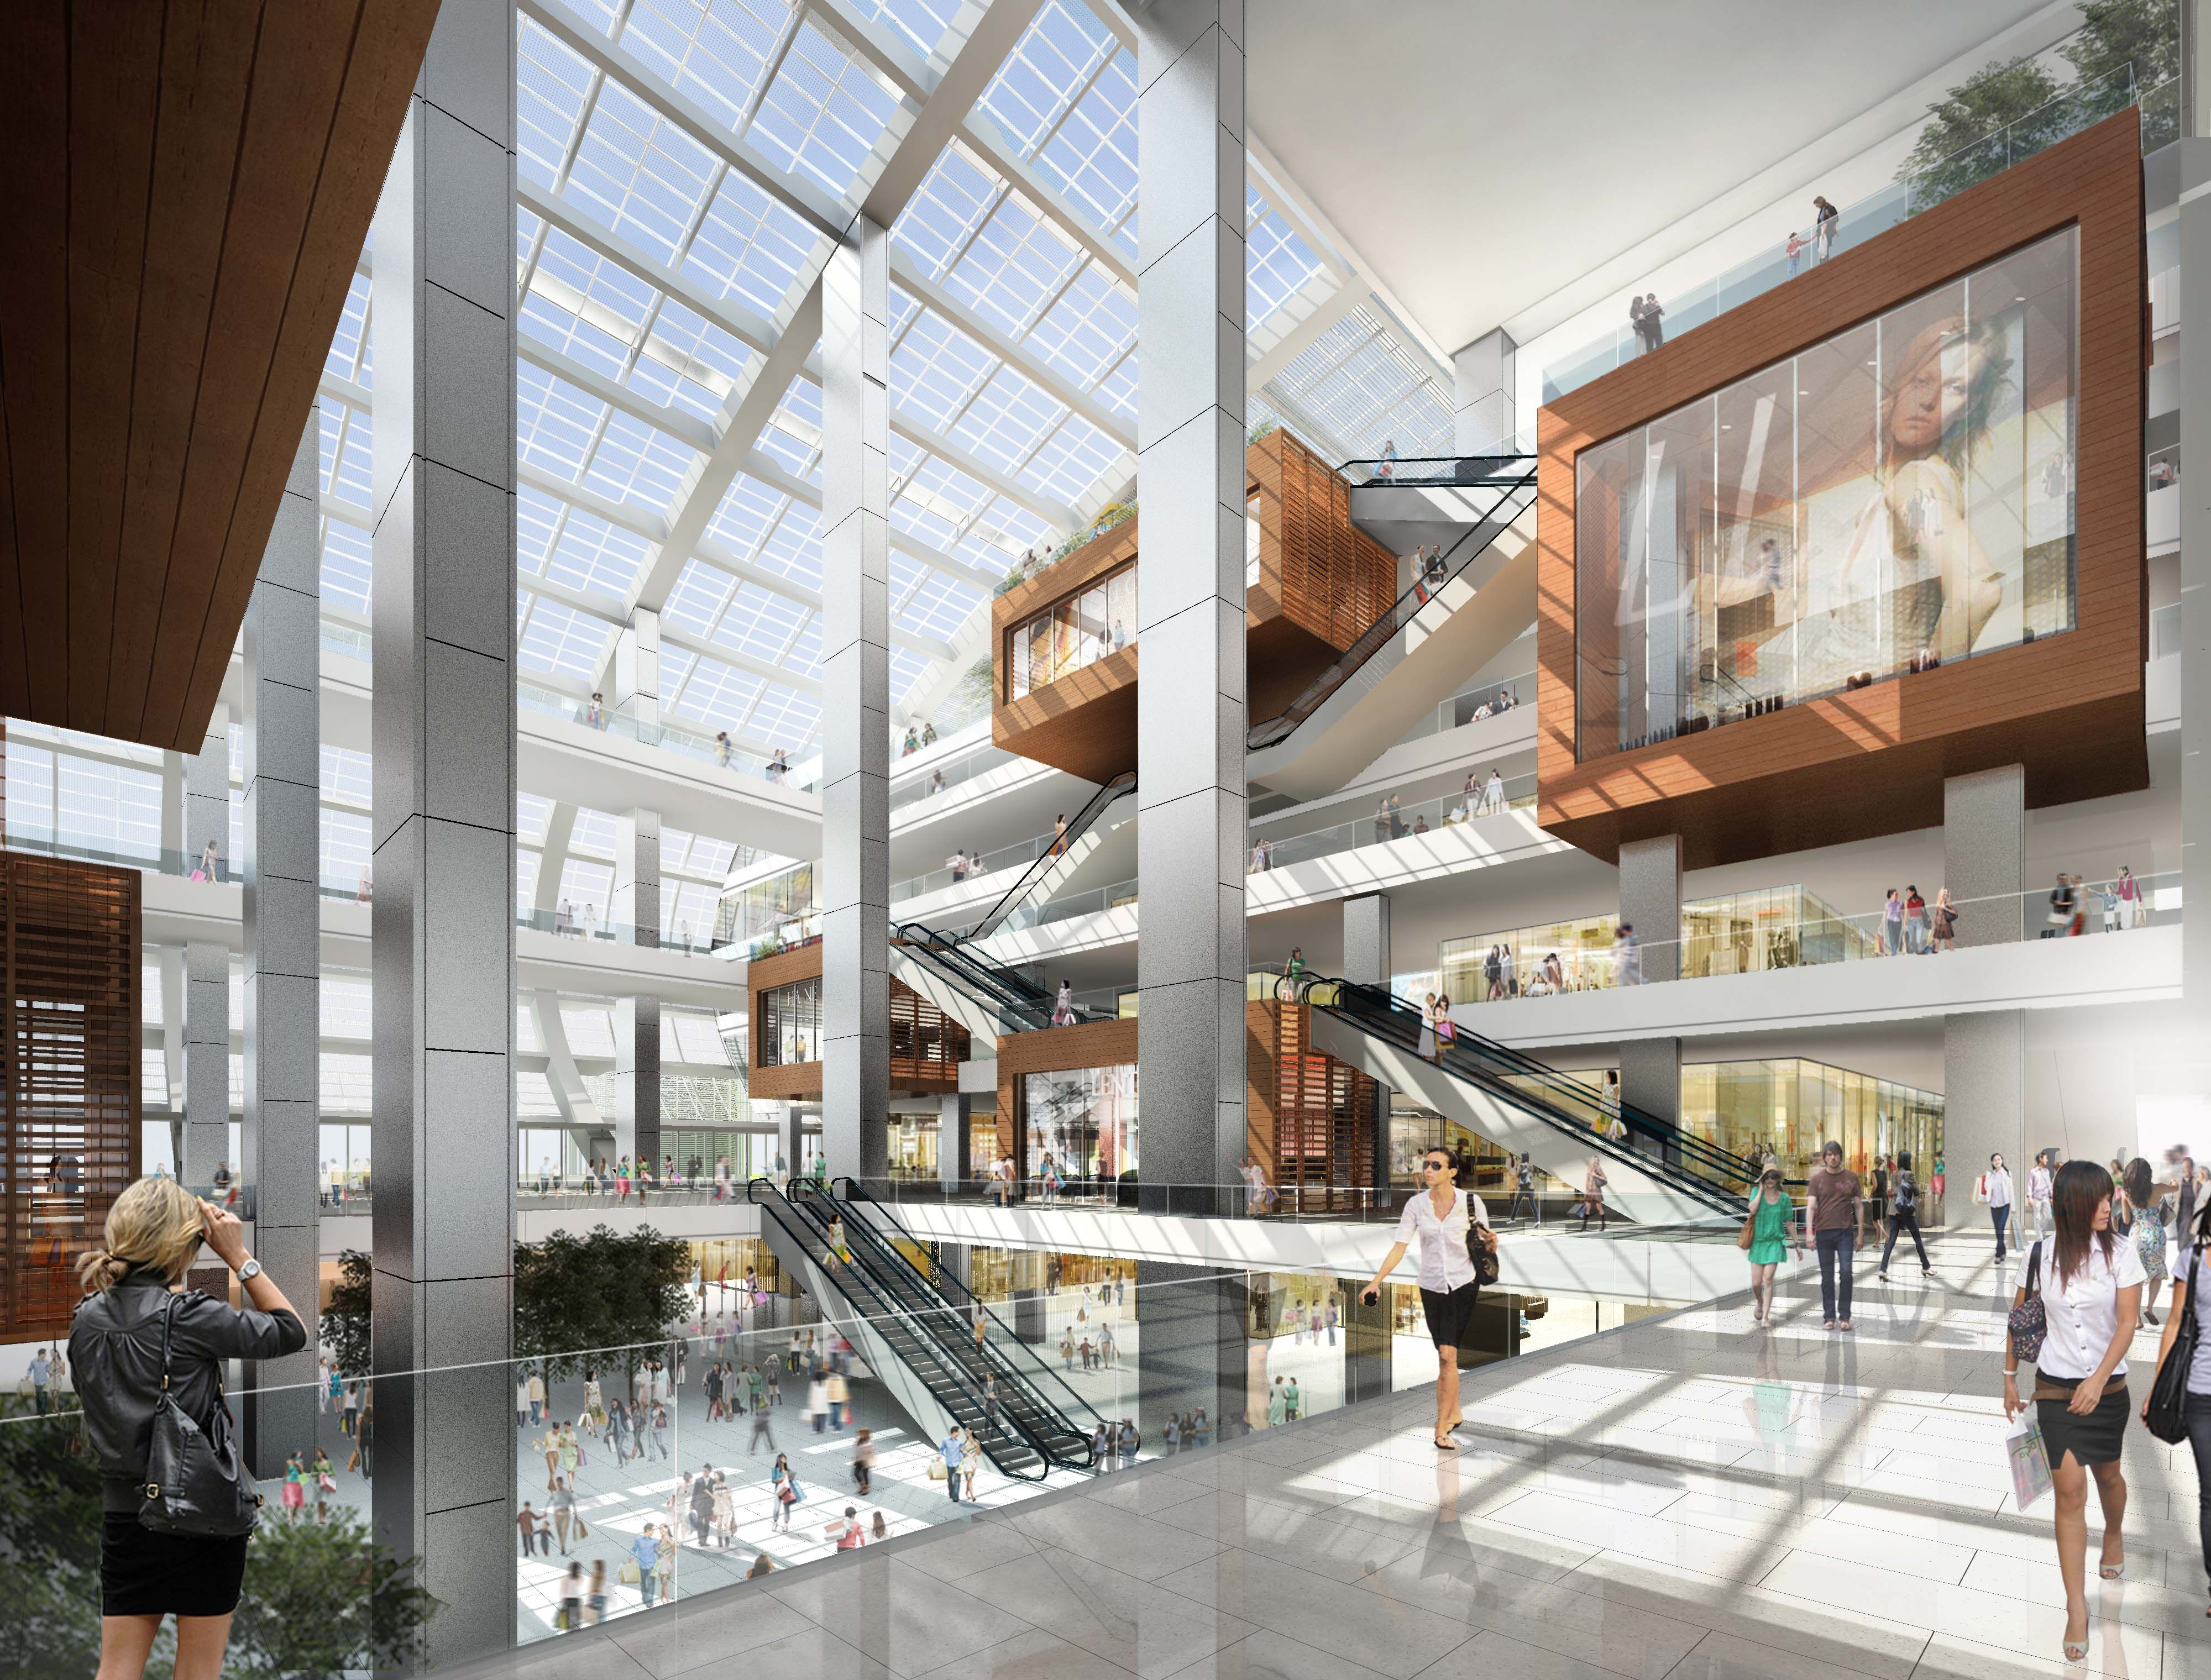 Kohn Pederson Renderings Of Interior Mall Design Makes Me Imagine Modular Housing A Place With